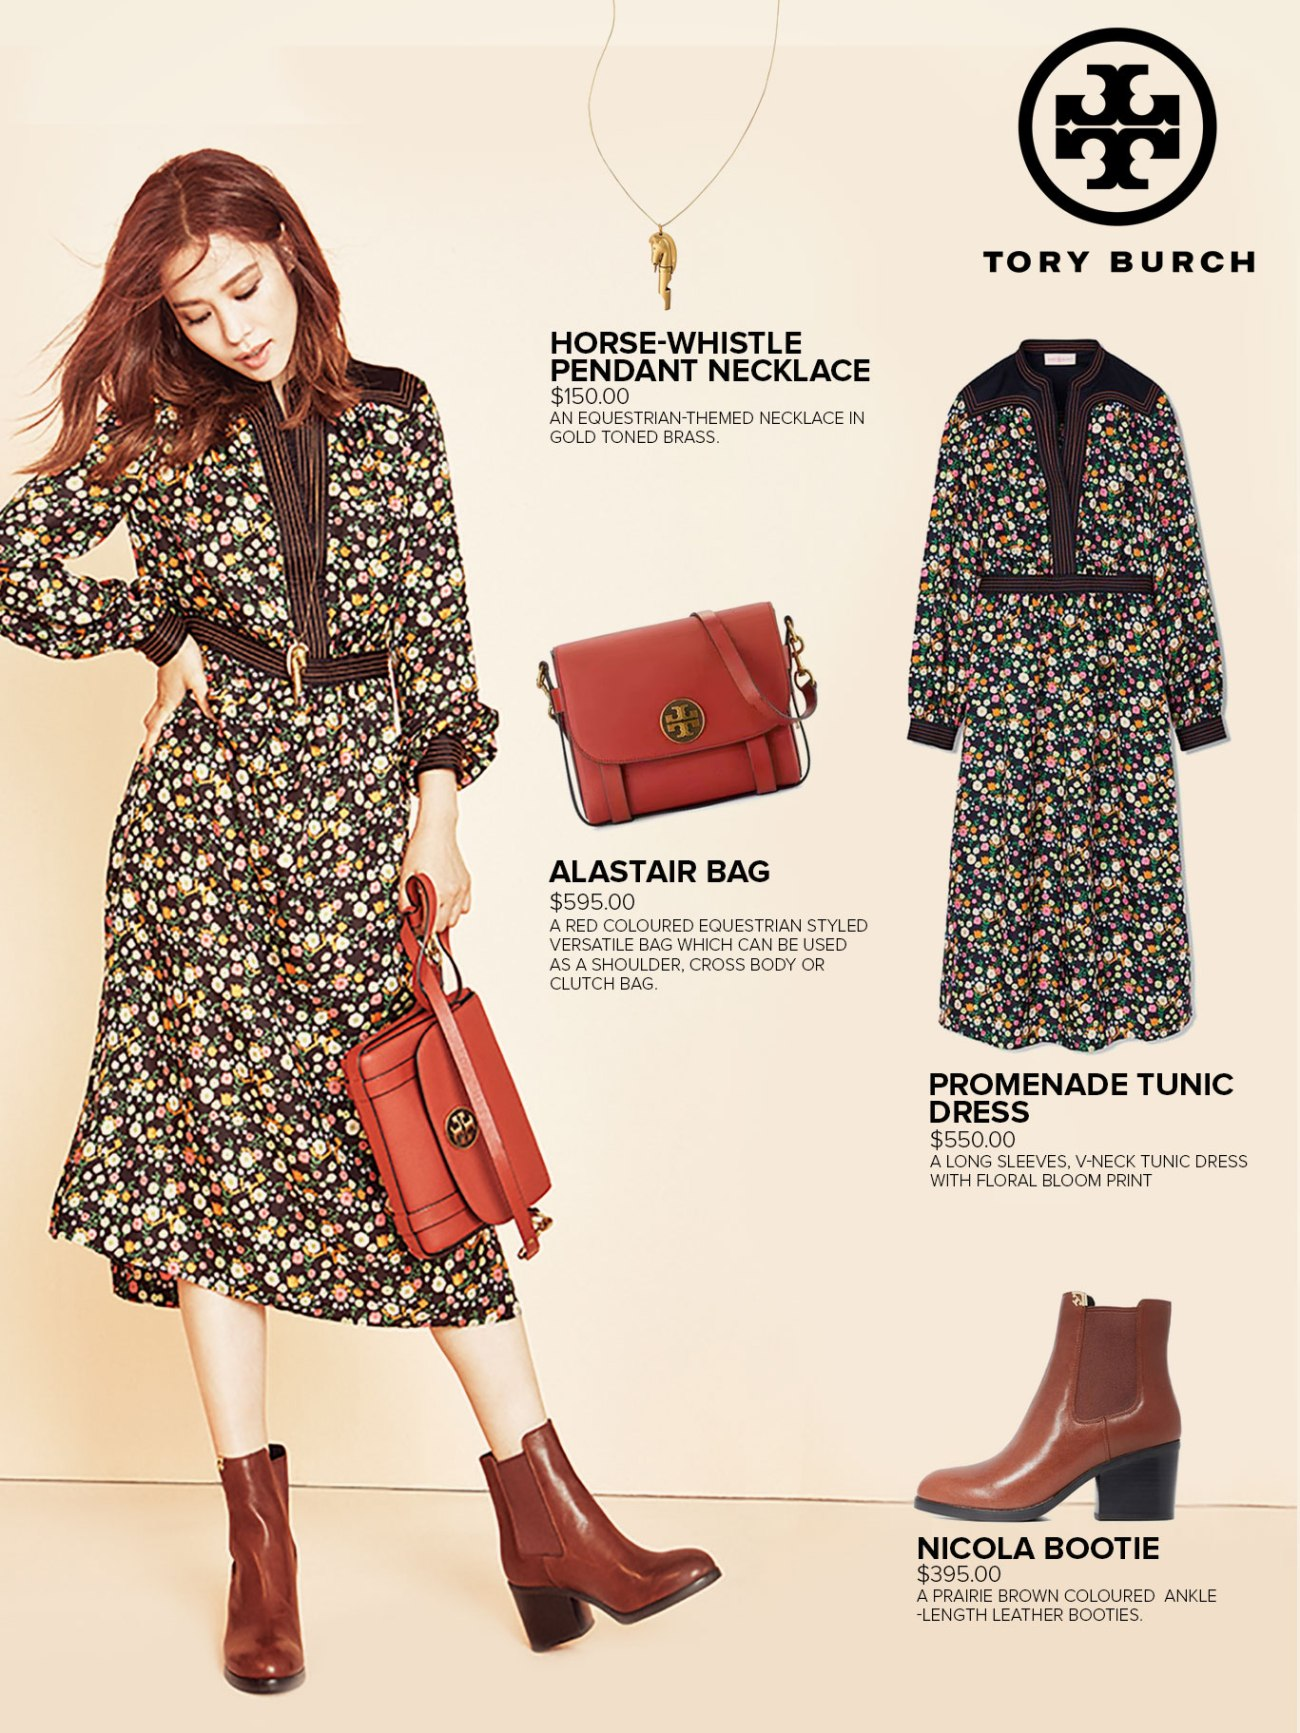 kim-hyun-joo-models-tory-burch-for-elle-08-drama-chronicles